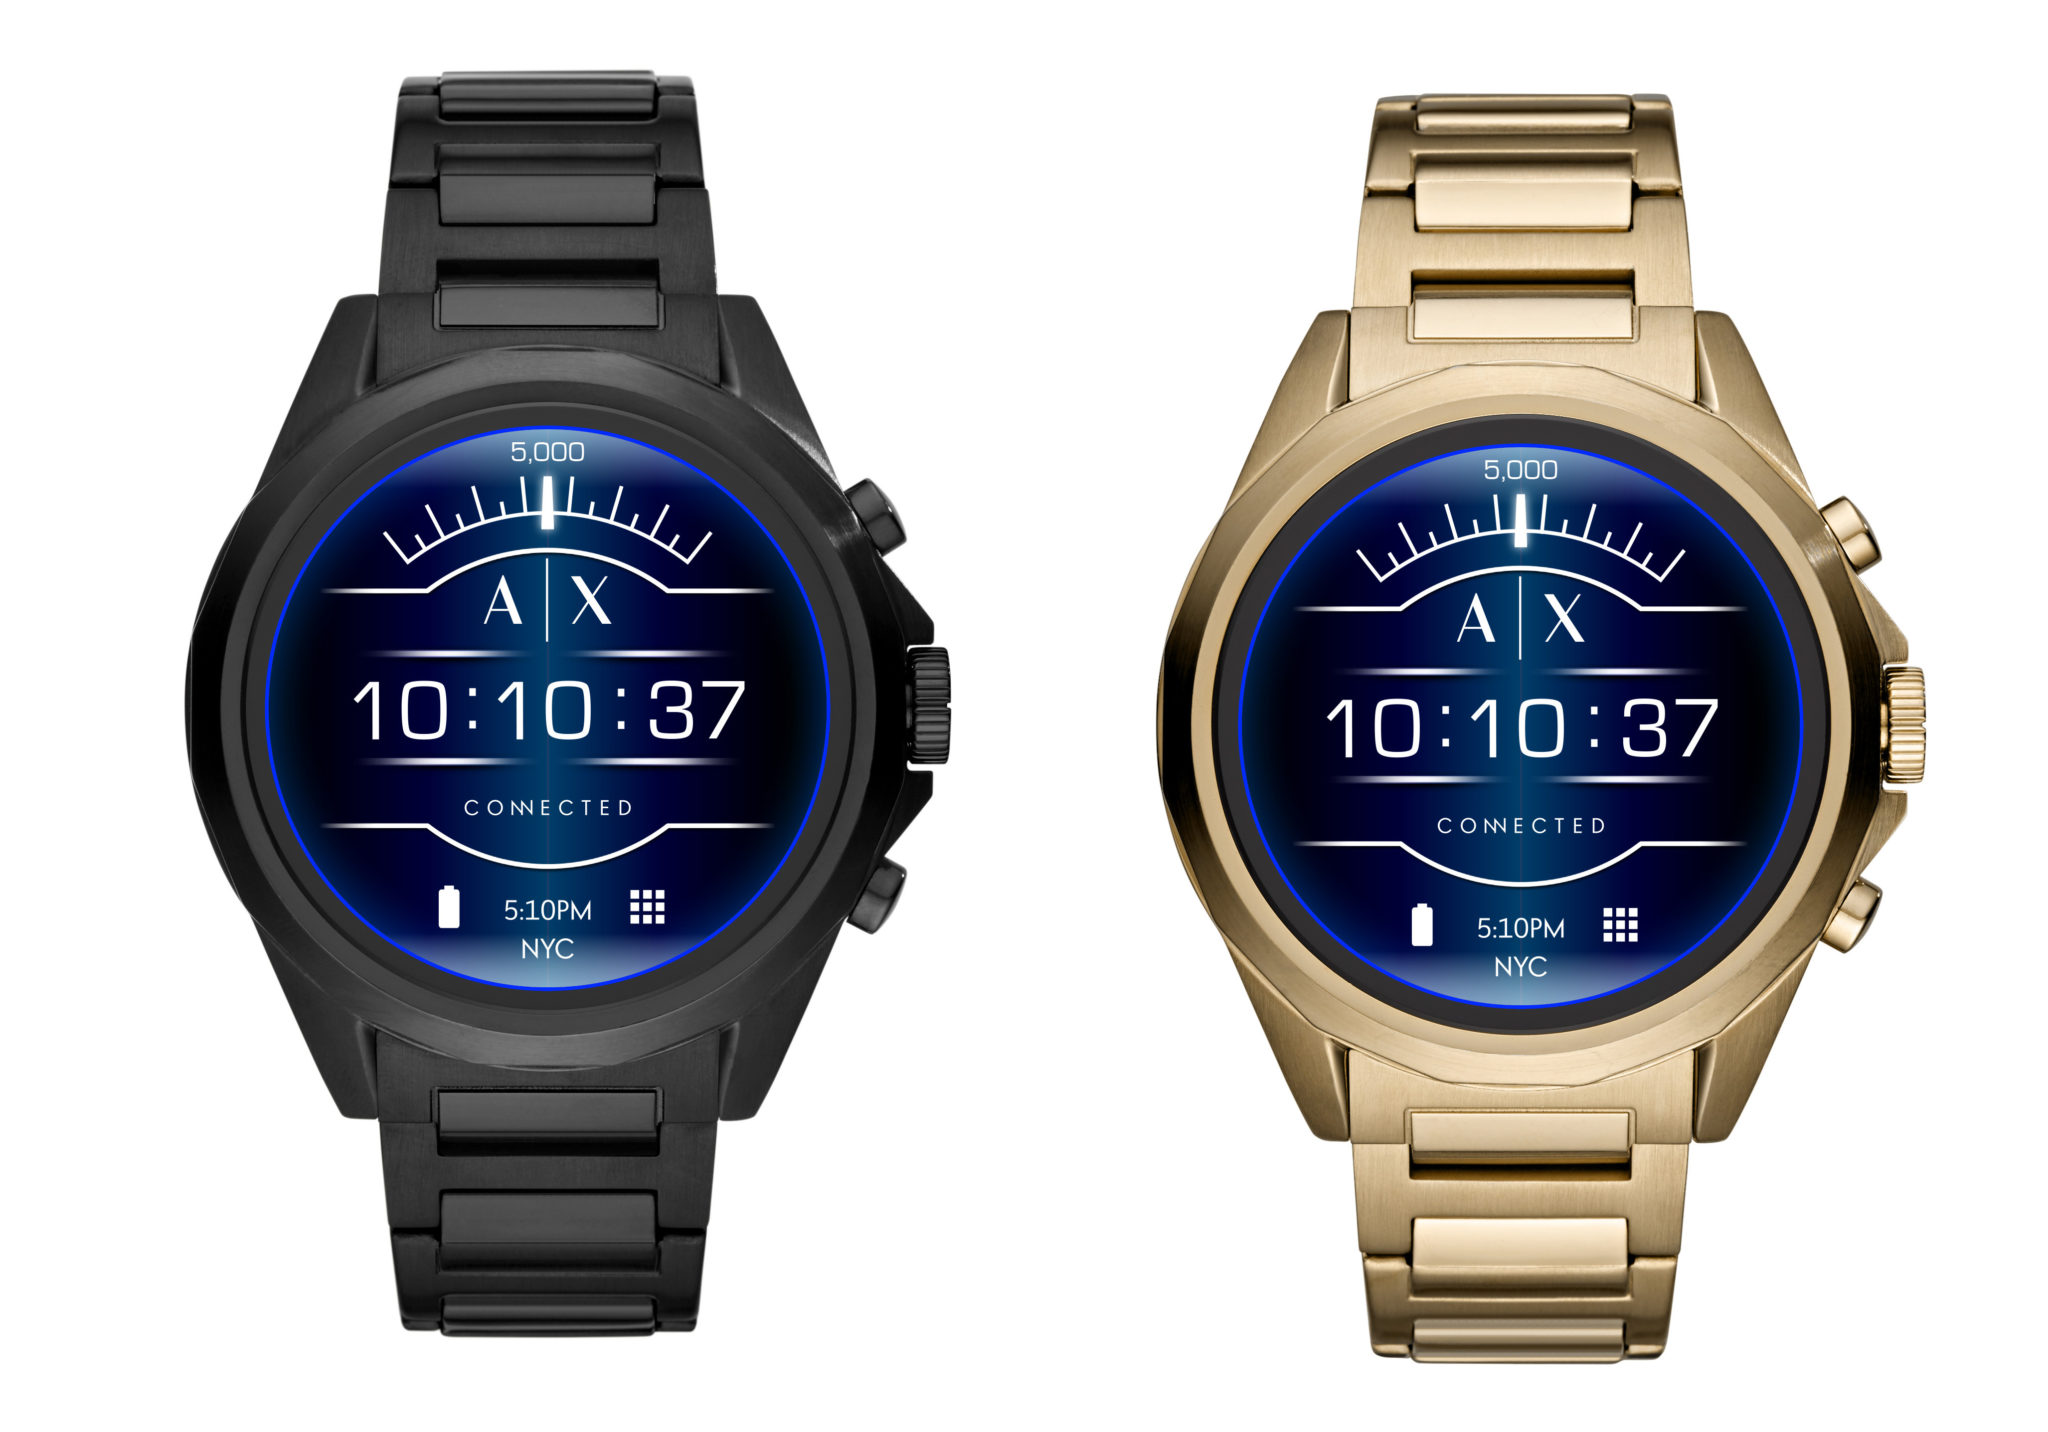 4c9ba049811 Fossil extends its smartwatch line to include A